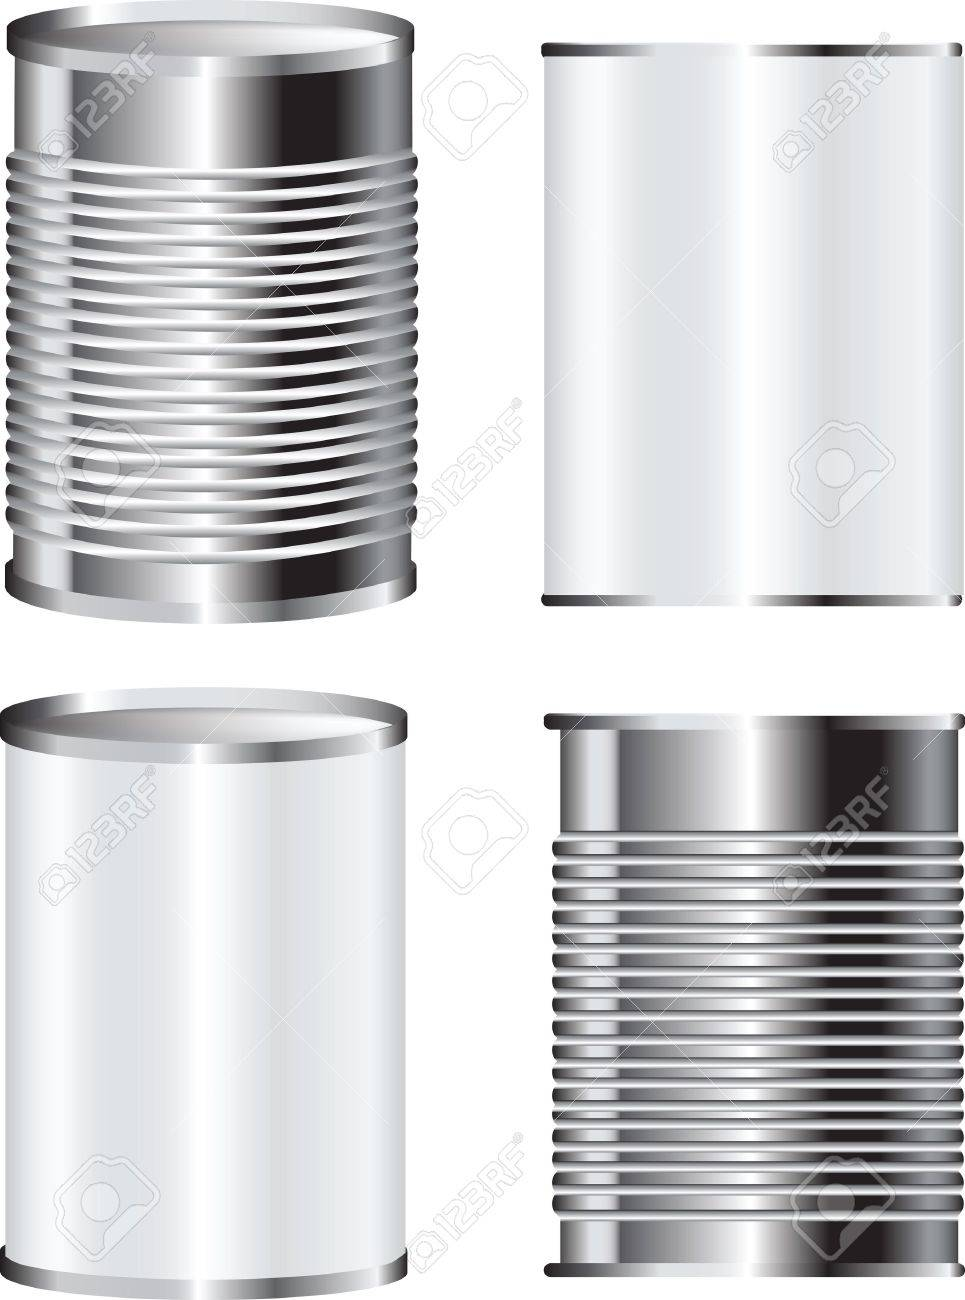 illustration of a tin food can for packaging with blank label - 9991705